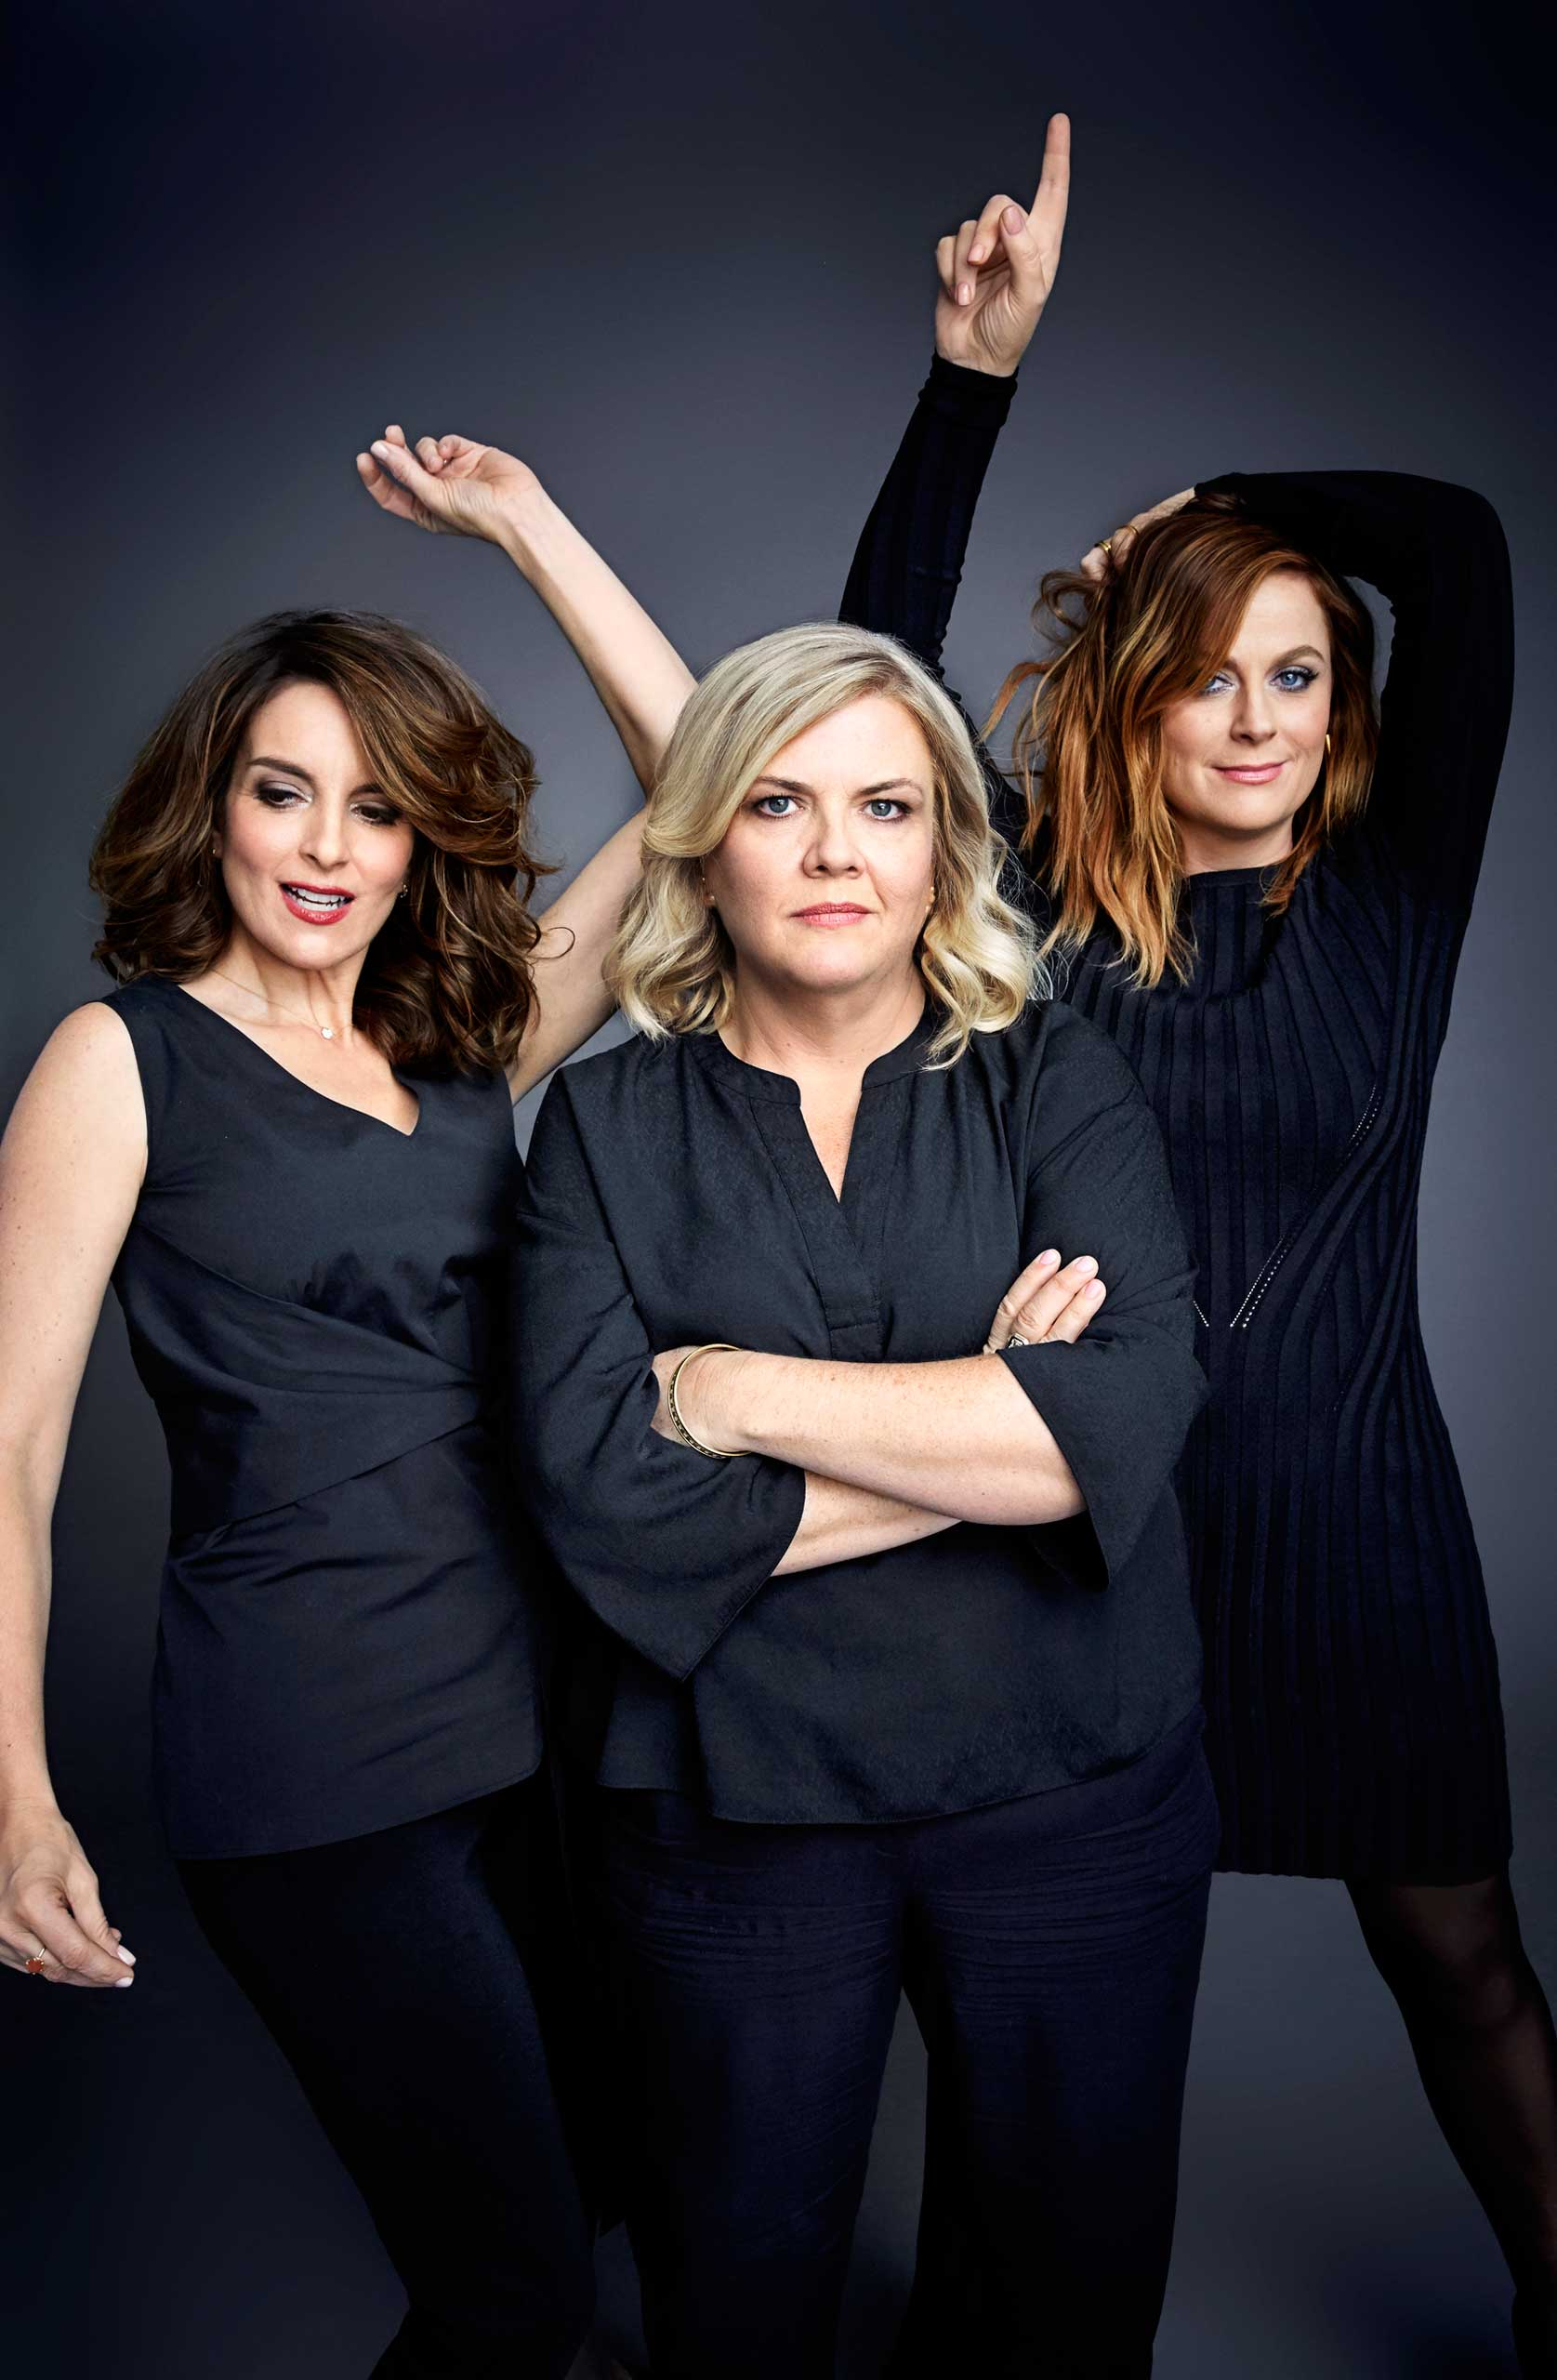 Fey, Pell and Poehler have known one another since their Saturday Night Live days